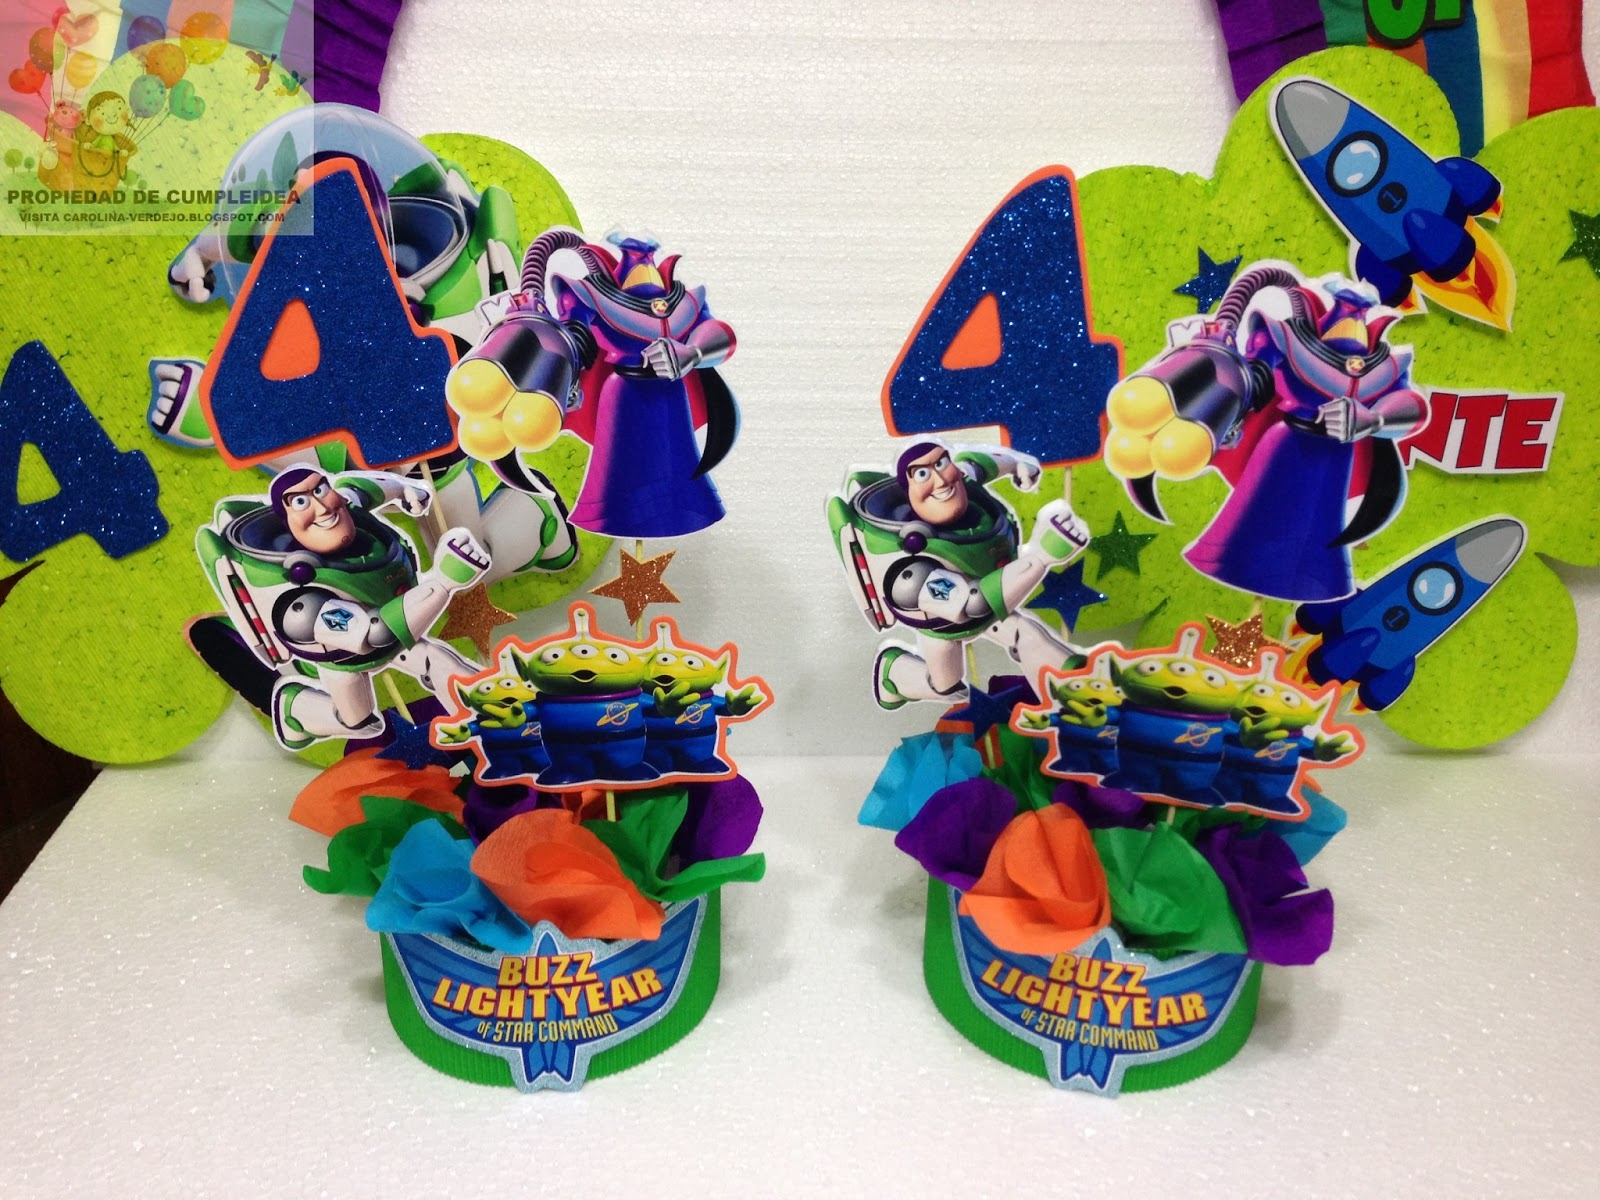 DECORACIONES INFANTILES: buzz lightyear